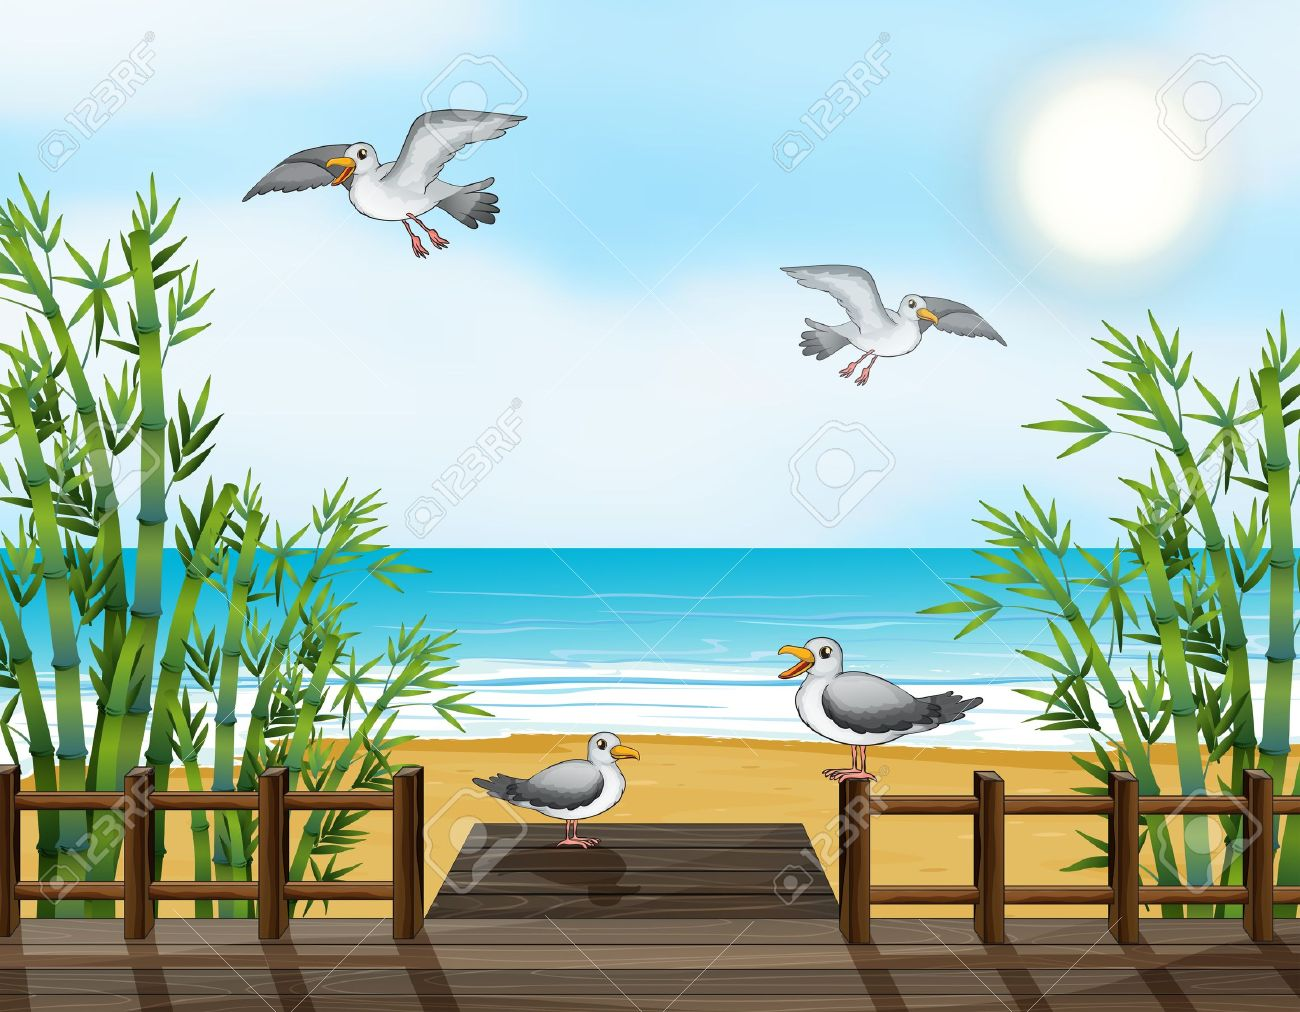 Illustration Of A Flock Of Birds At The Bridge Royalty Free.